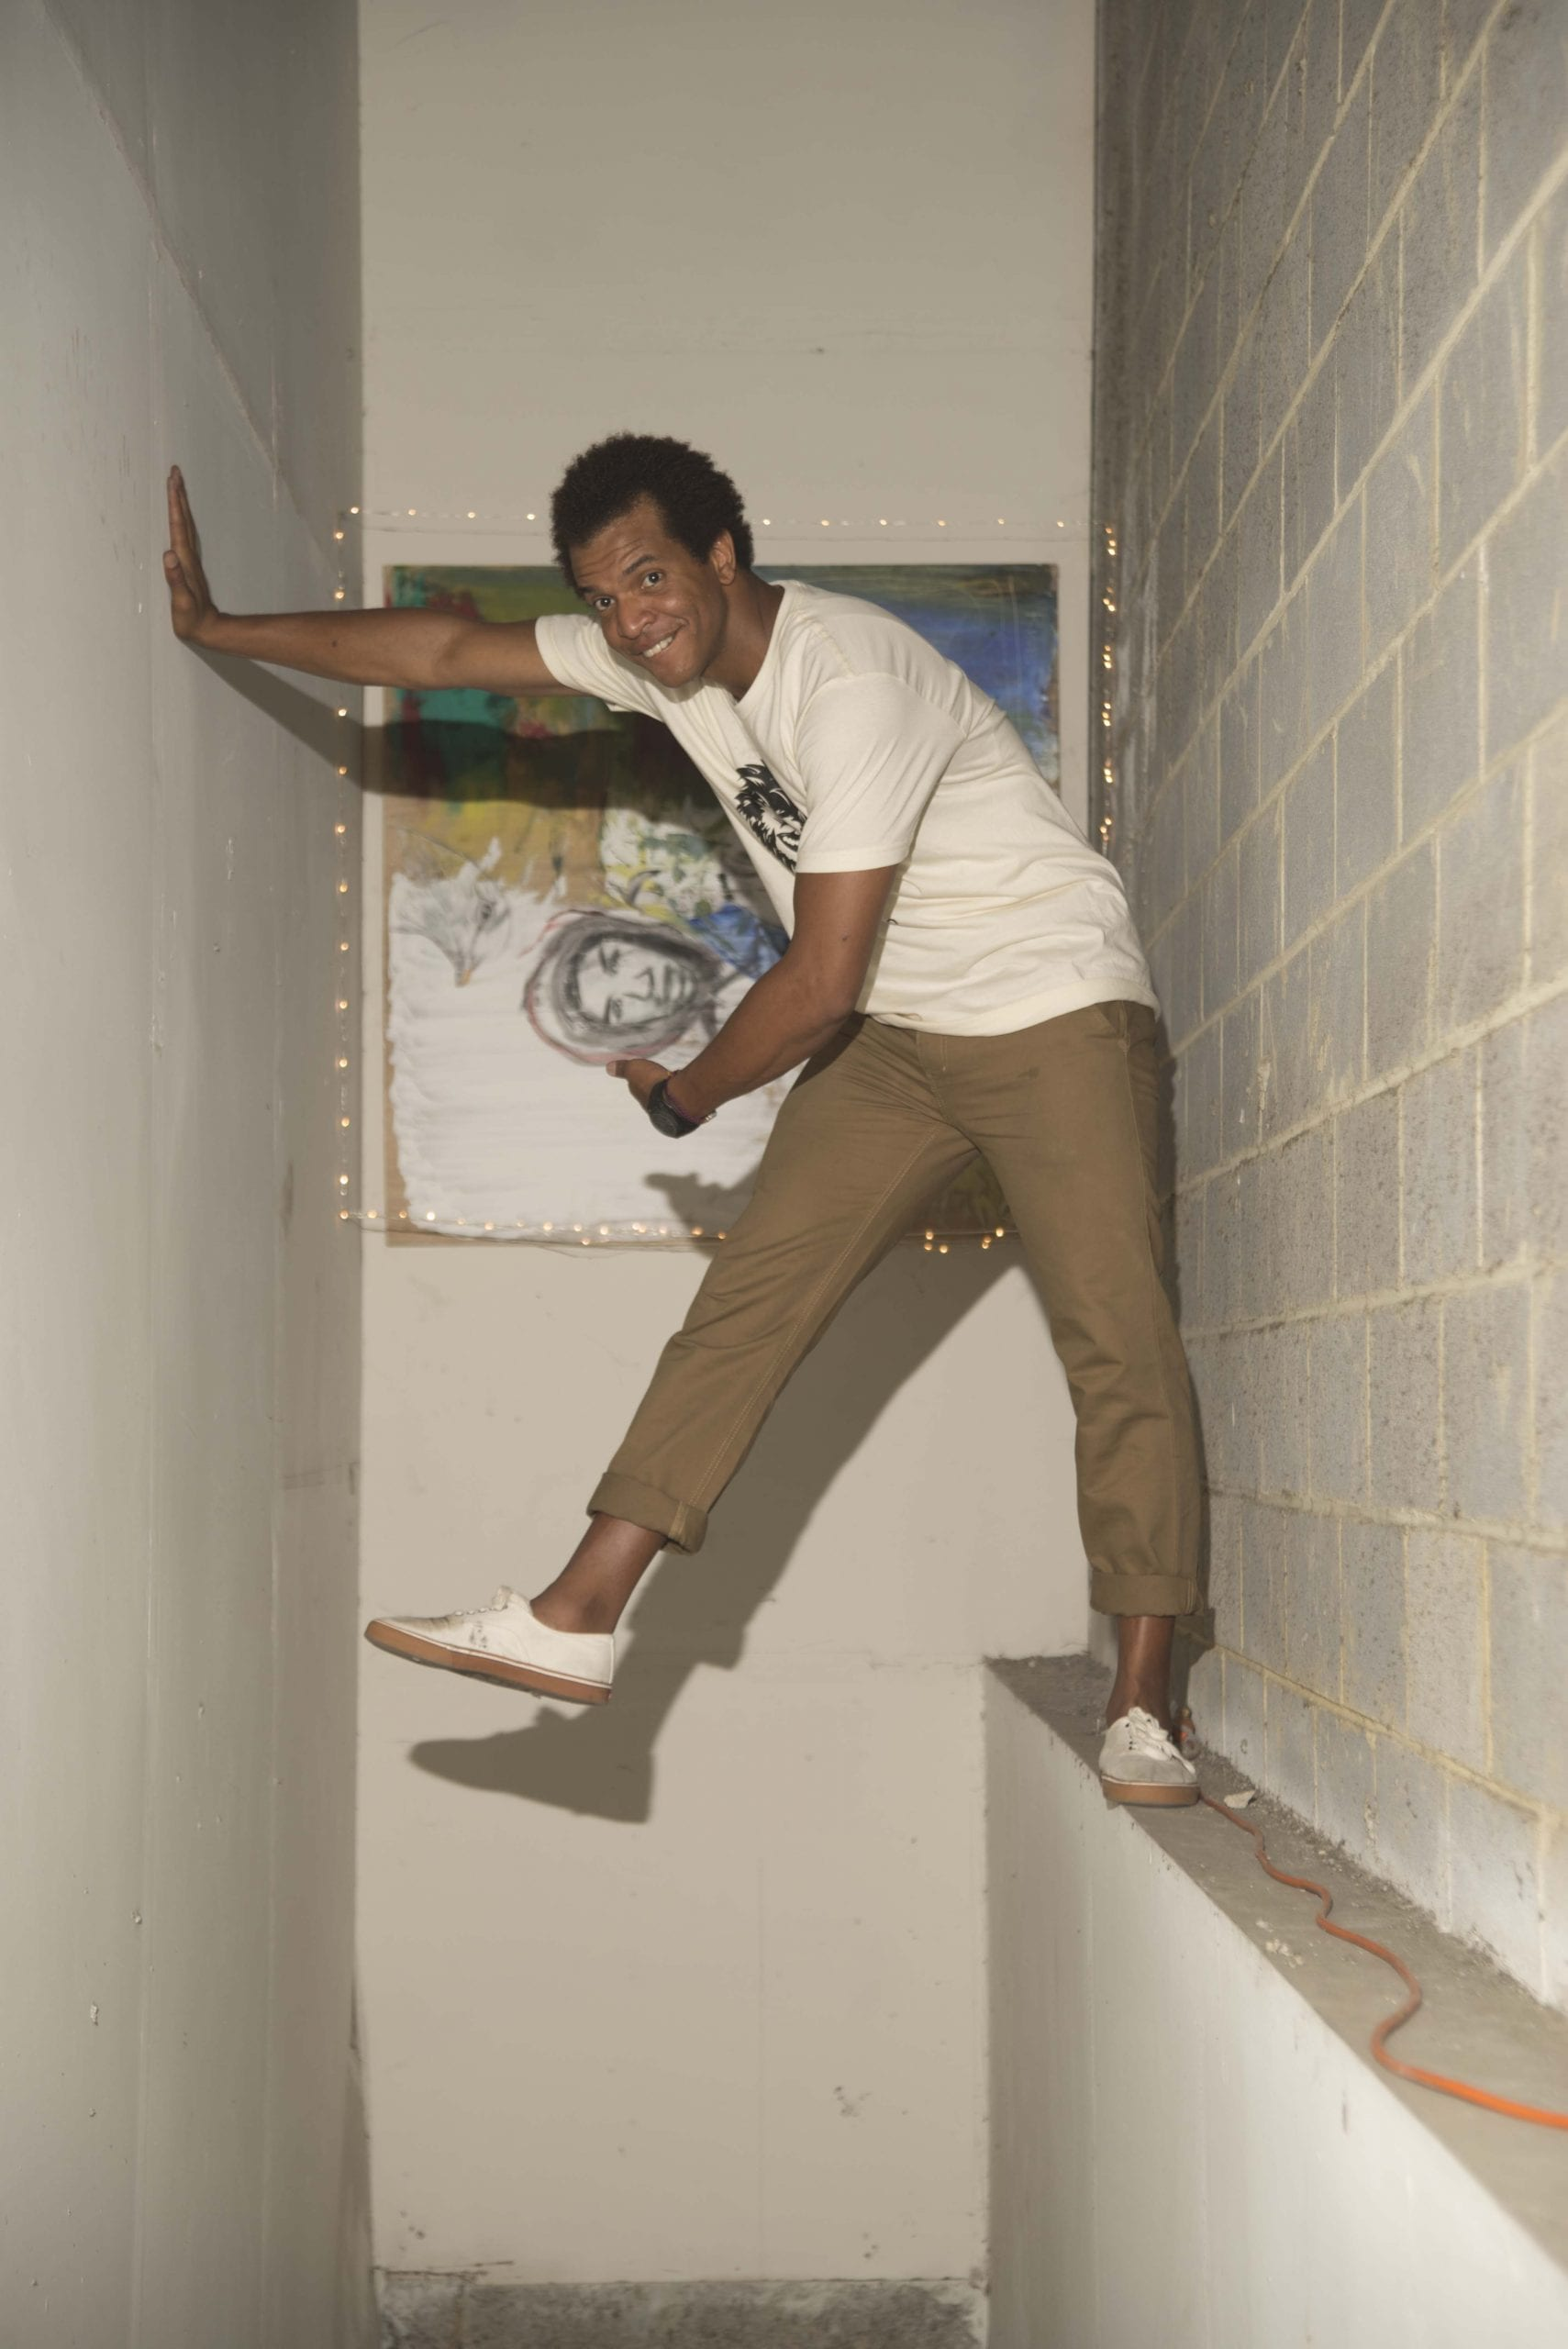 Artist Timoteo Murphy tempted gravity as he mounts one of his many canvases at the warehouse.